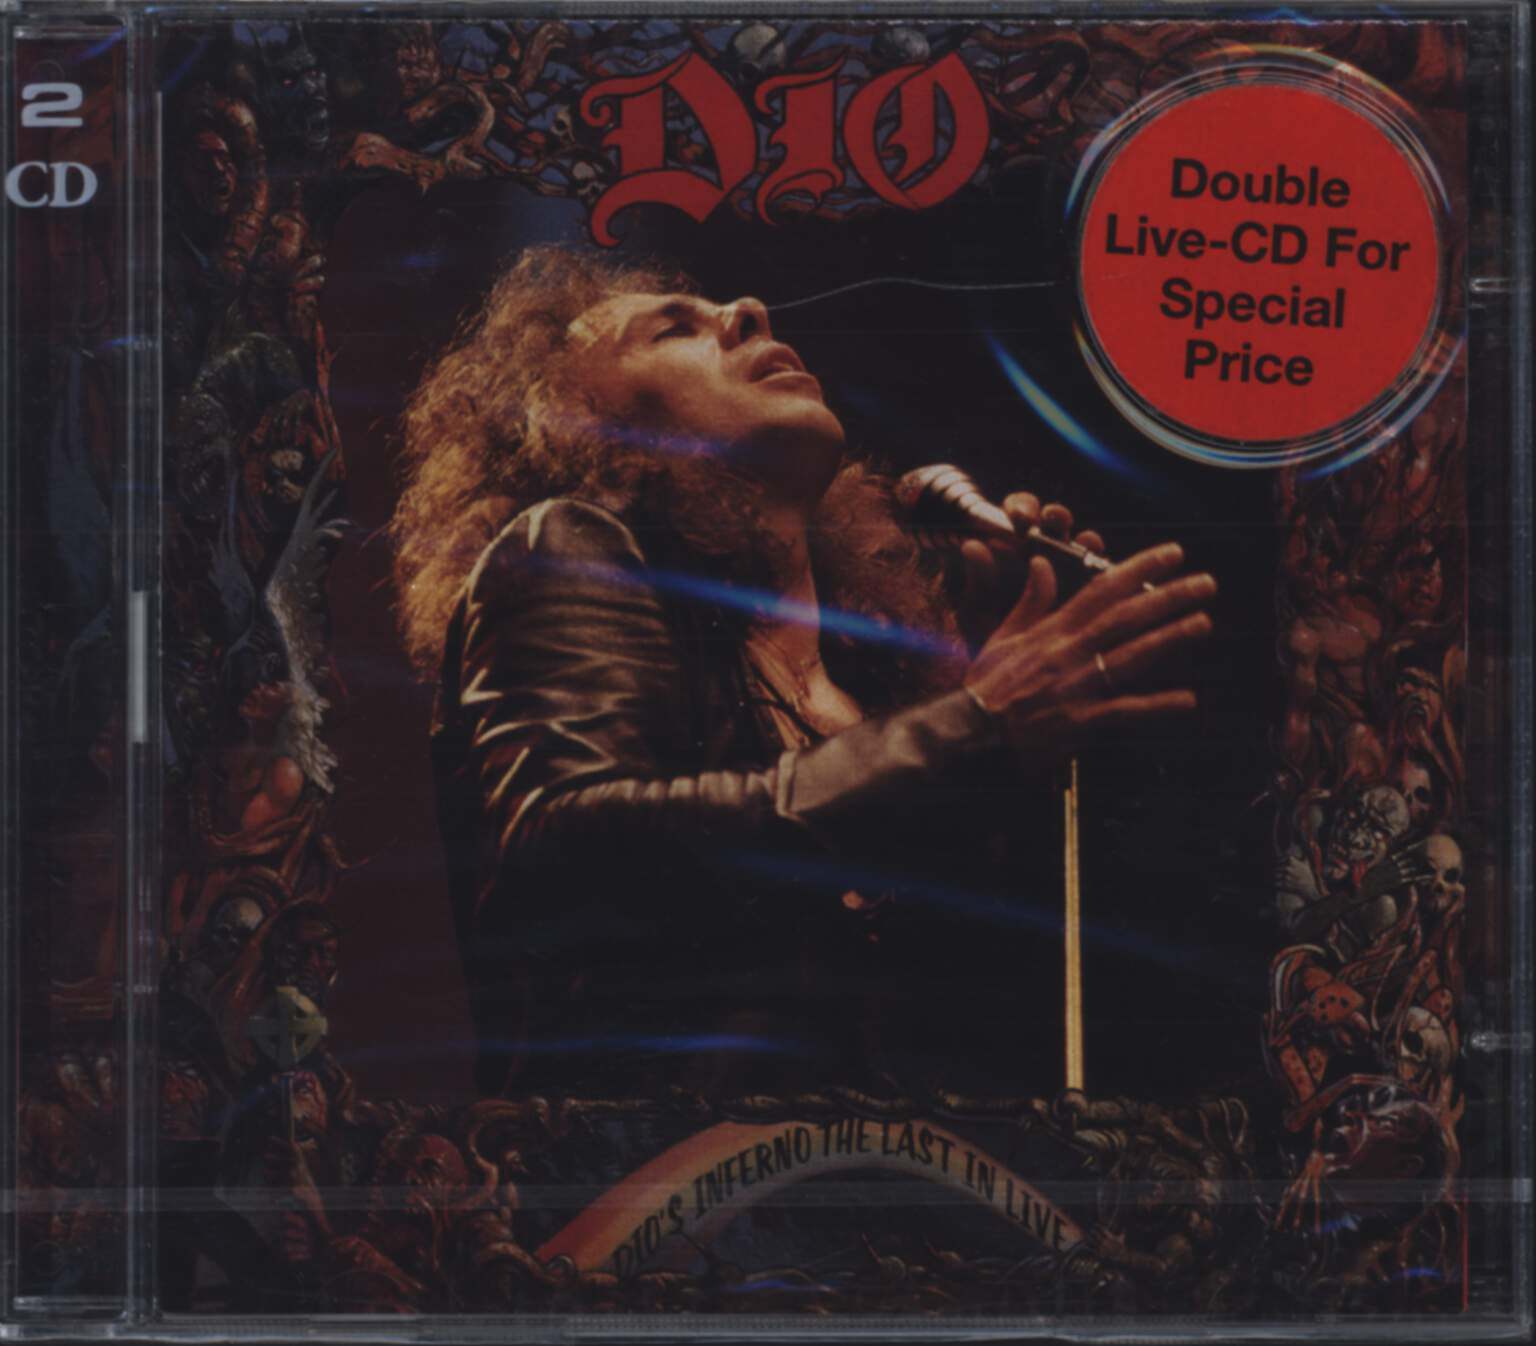 Dio: Dio's Inferno - The Last In Live, CD